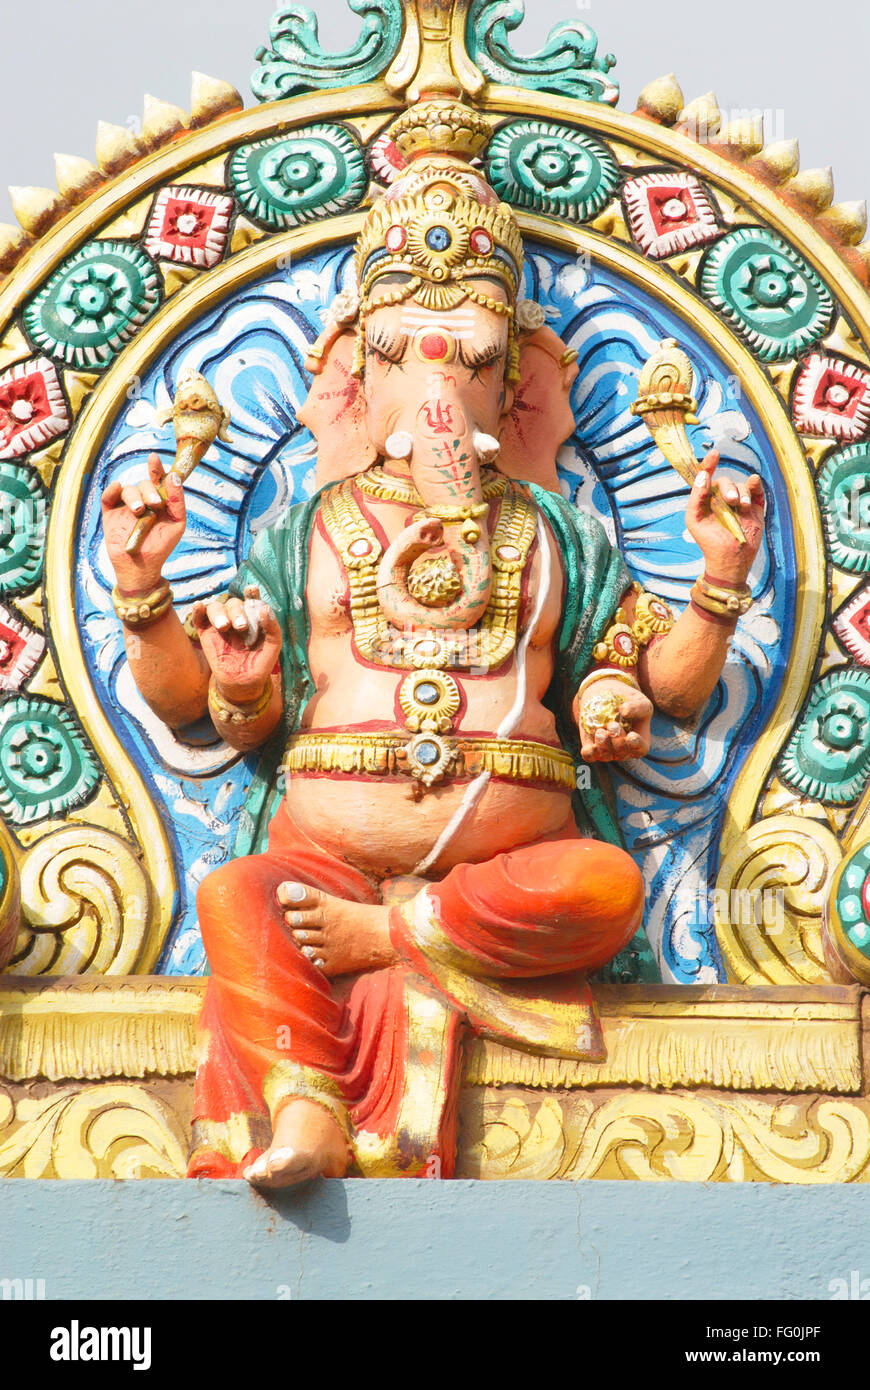 Colourfully painted stucco statue of lord Ganesh ganpati on temple , Thanjavur , Tamil Nadu , India - Stock Image